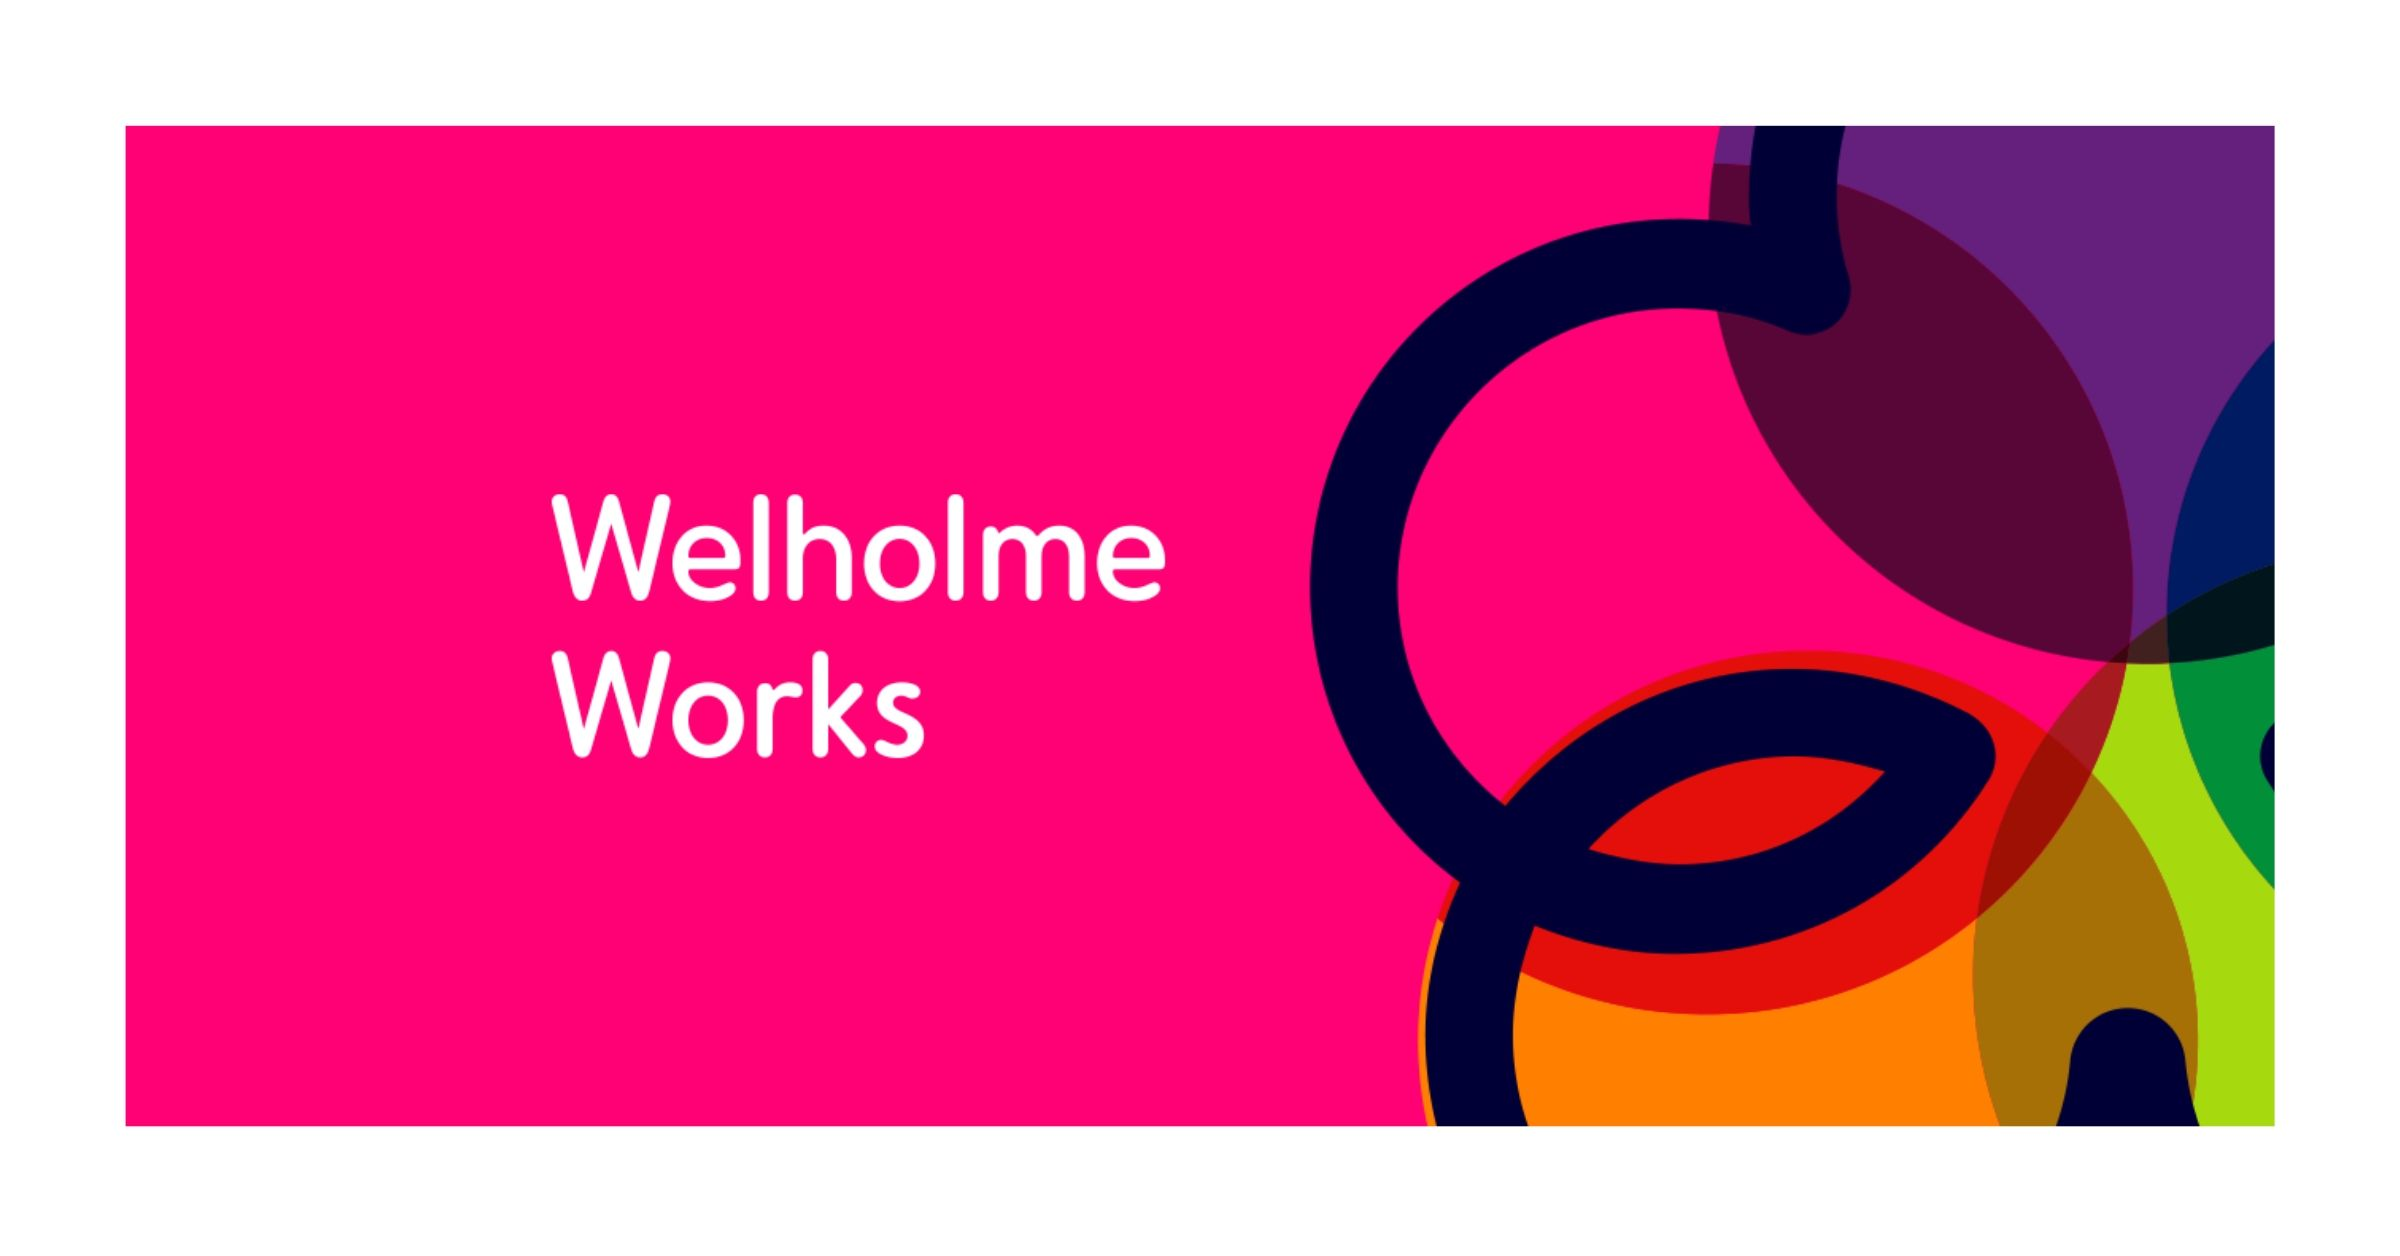 Free craft sessions at Welholme Works